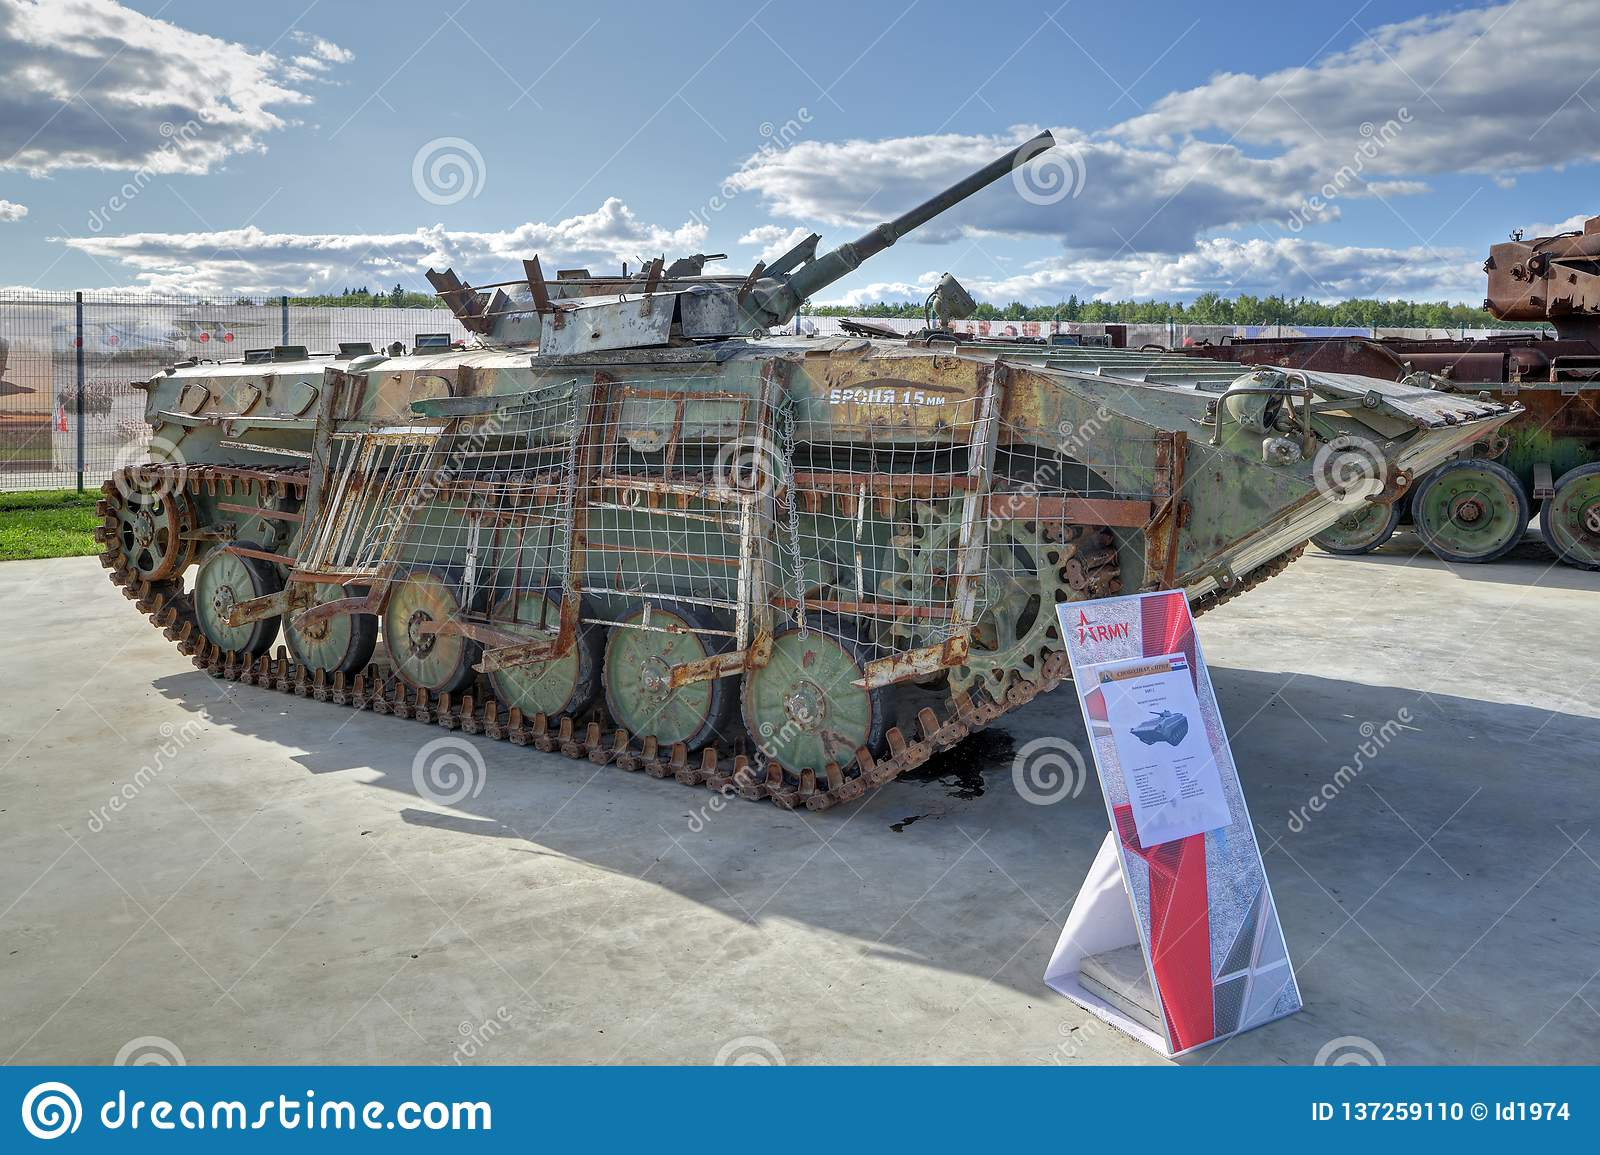 Infantry Fighting Vehicle BMP-1 Editorial Image - Image of